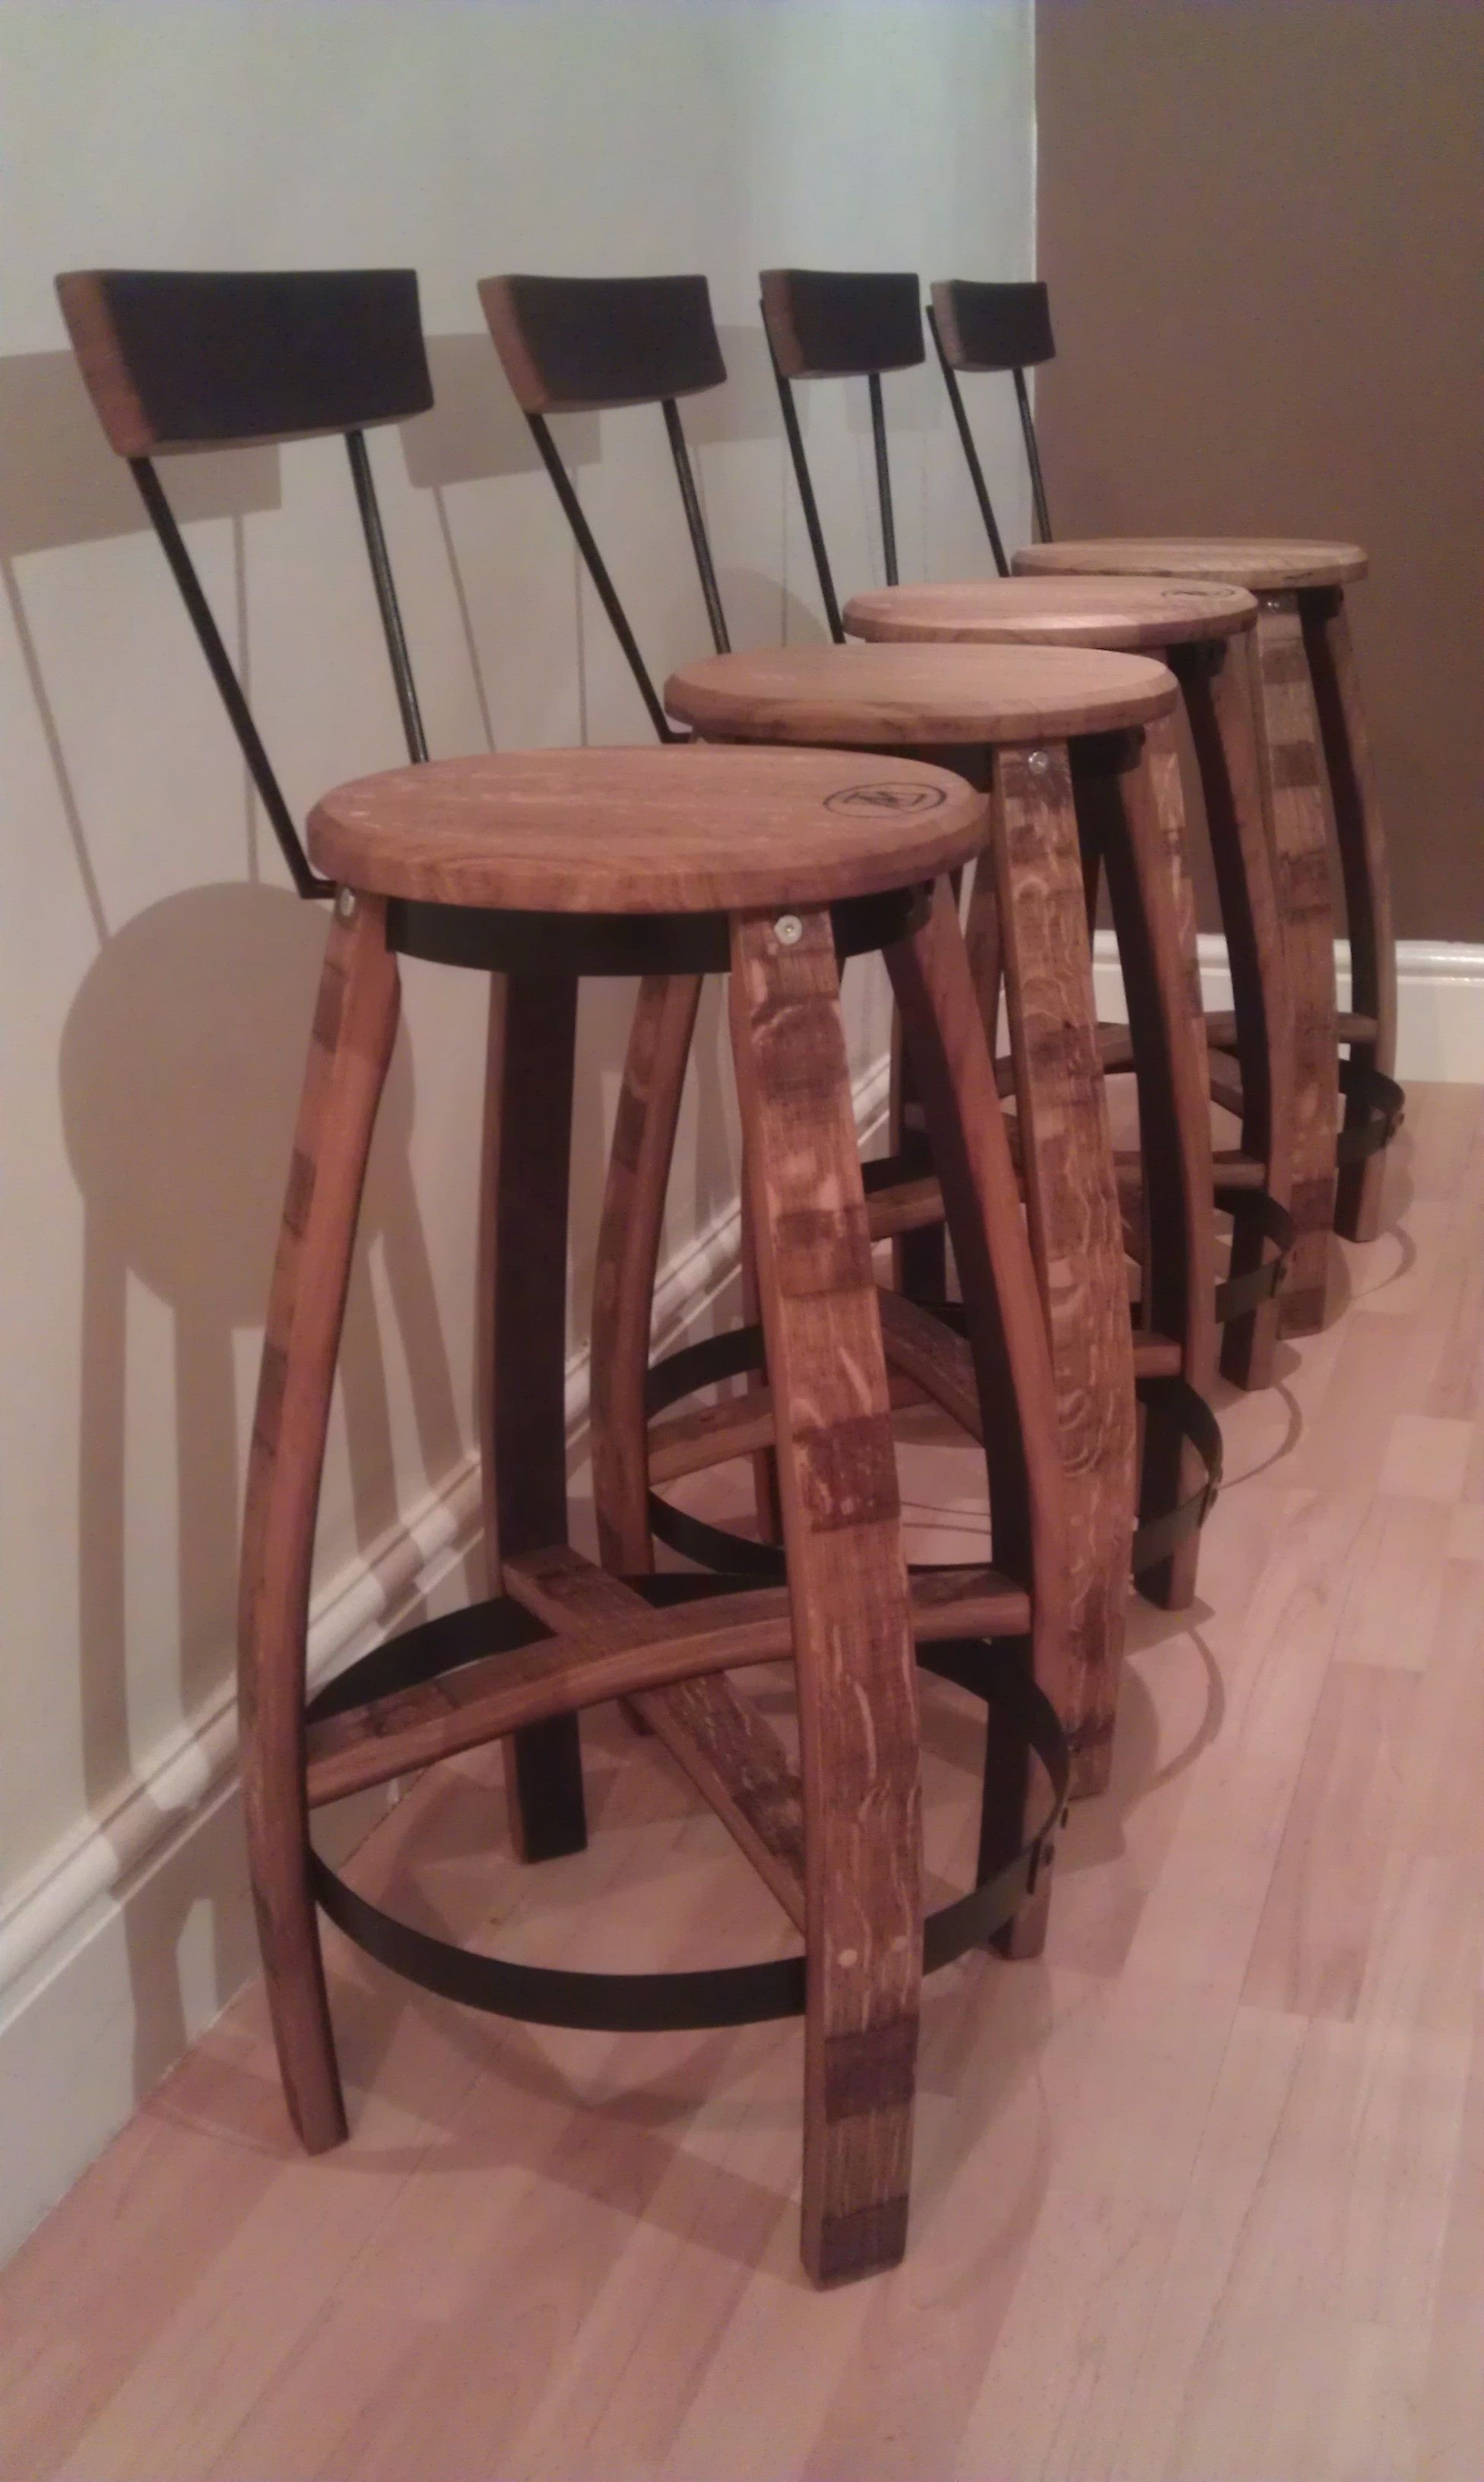 Bar Stools Breakfast Stools Handcrafted From Premium Wine Barrels For Sale 520 Inc Uk Post Where Applicable Barrel Projects Wine Barrel Breakfast Stools